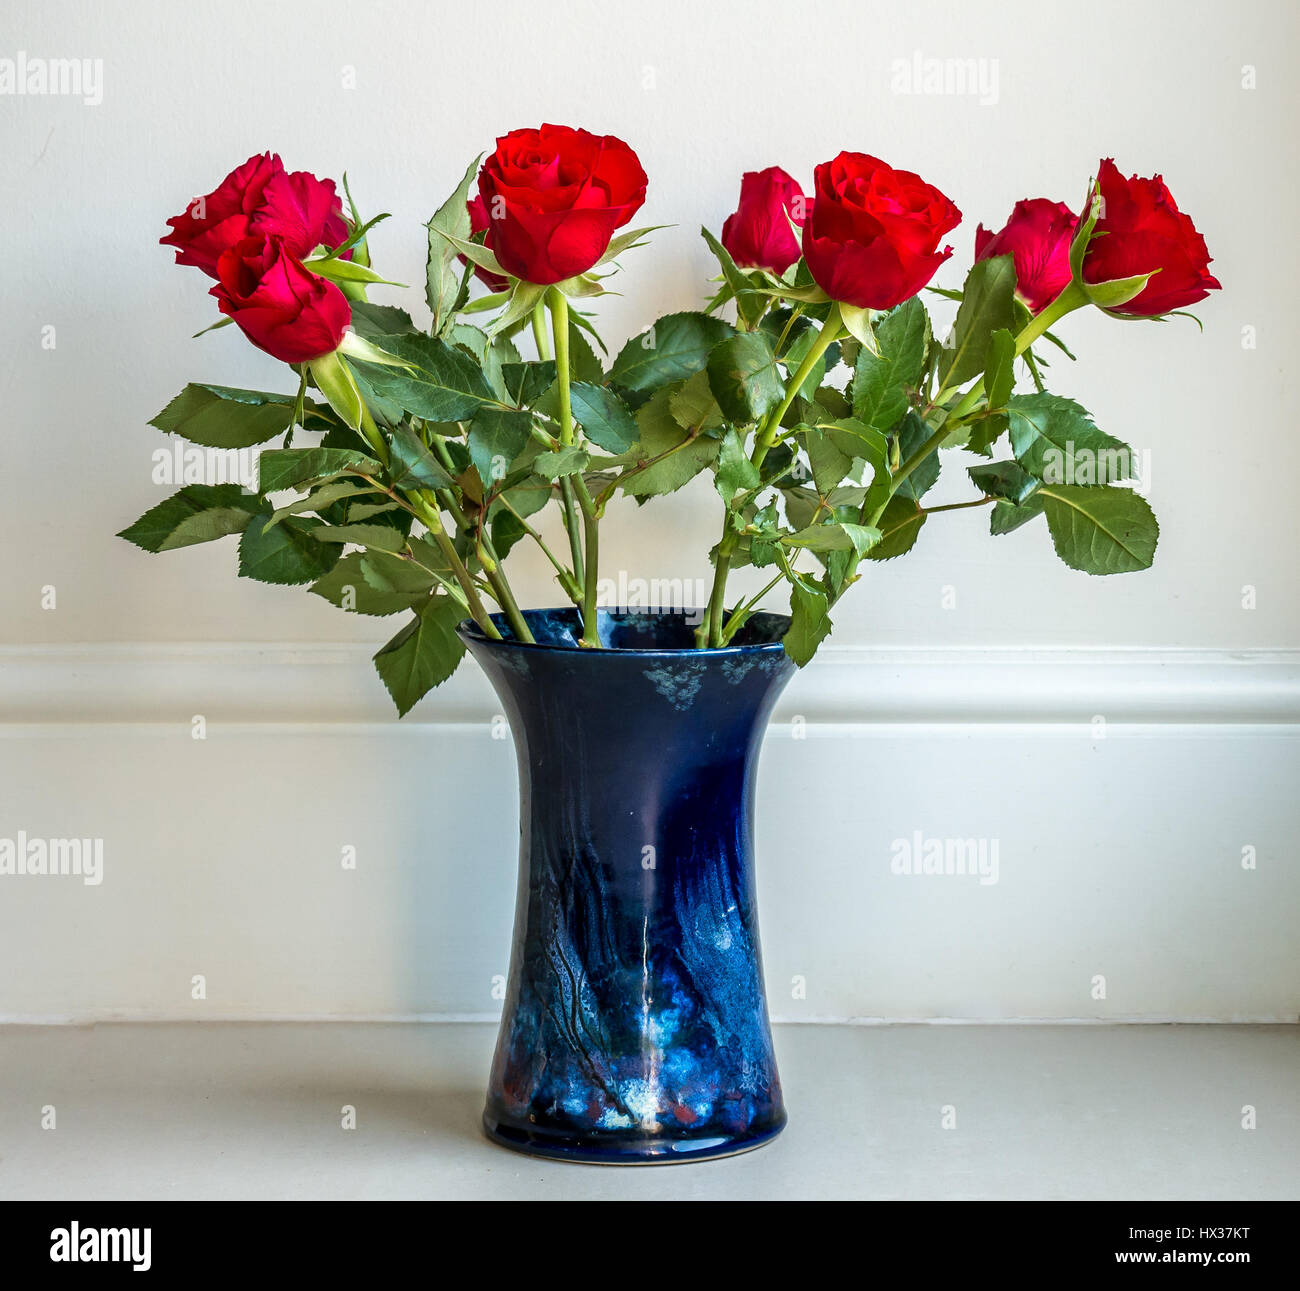 Simple arrangement of deep red roses in blue ceramic vase against simple arrangement of deep red roses in blue ceramic vase against plain neutral cream background reviewsmspy